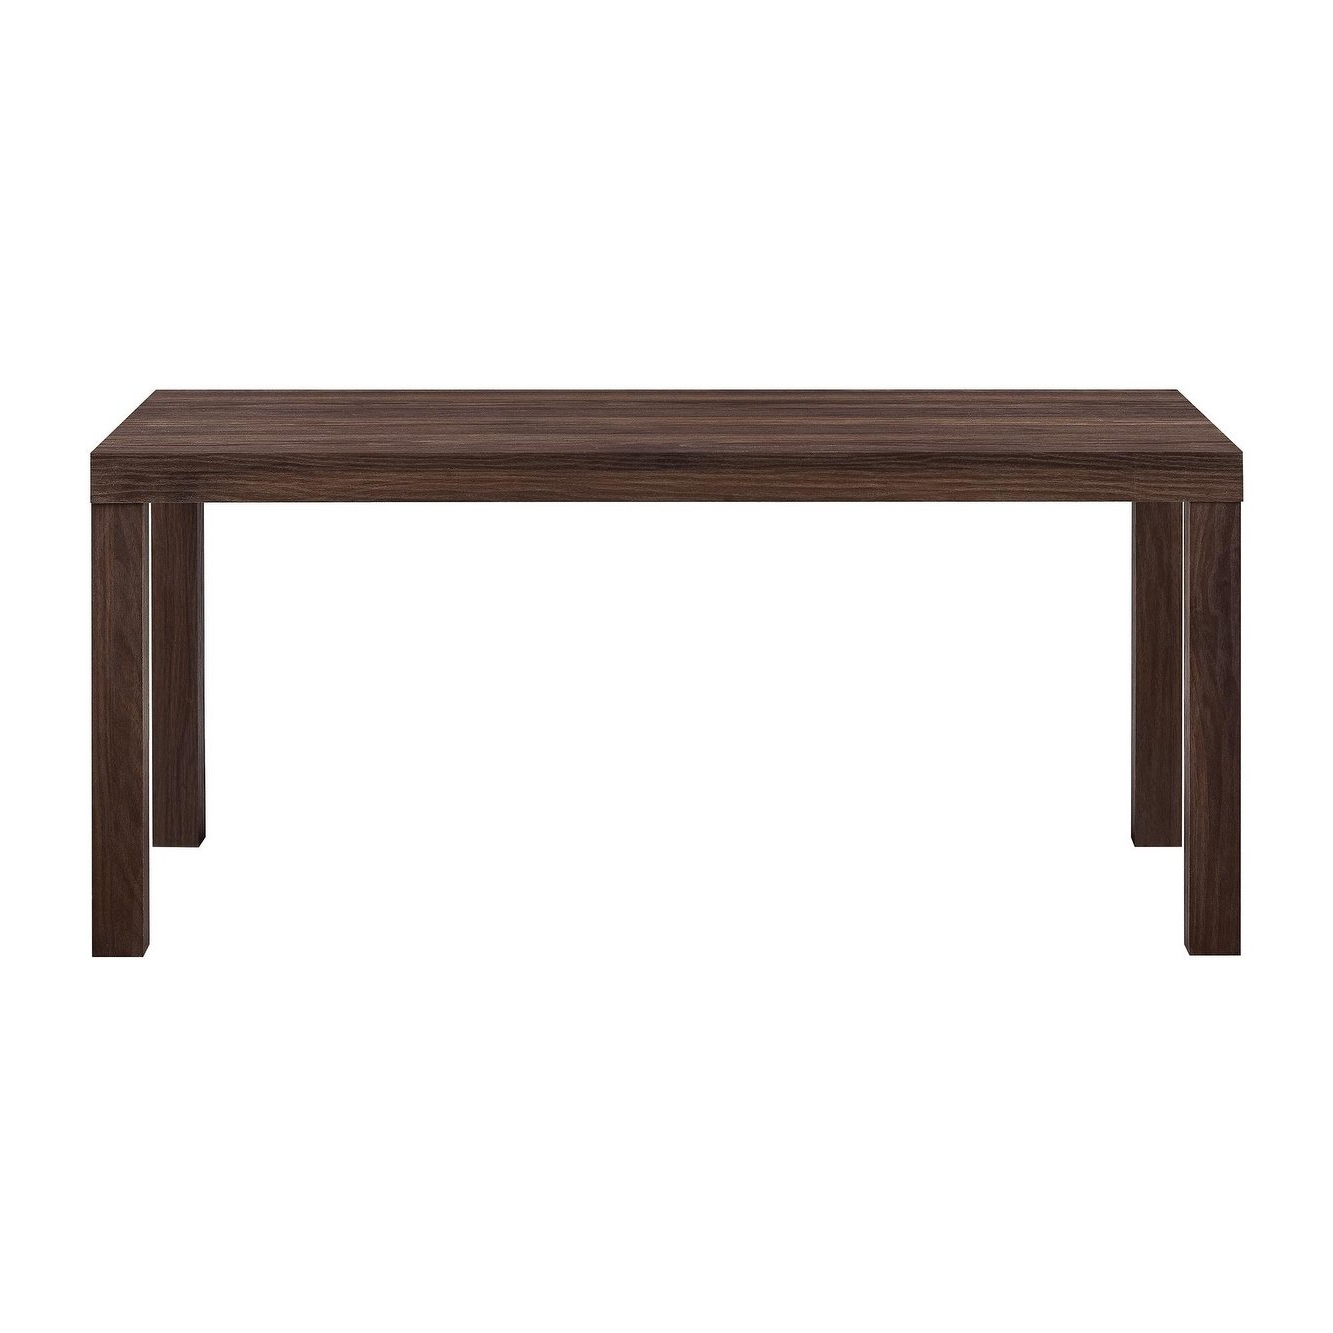 Shop Avenue Greene Jaxon Walnut Coffee Table – Free Shipping Today With Regard To 2019 Jaxon Cocktail Tables (Gallery 12 of 20)